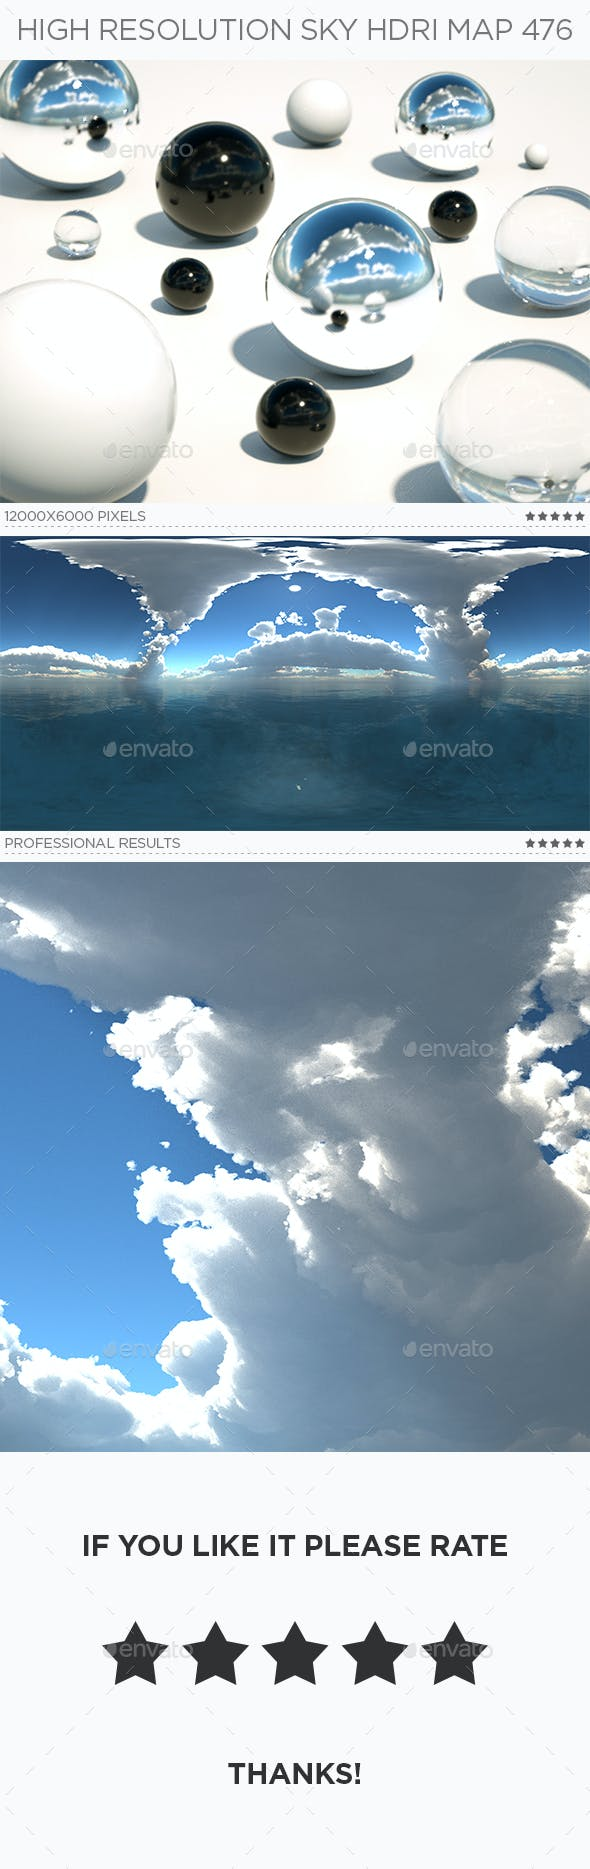 High Resolution Sky HDRi Map 476 - 3DOcean Item for Sale